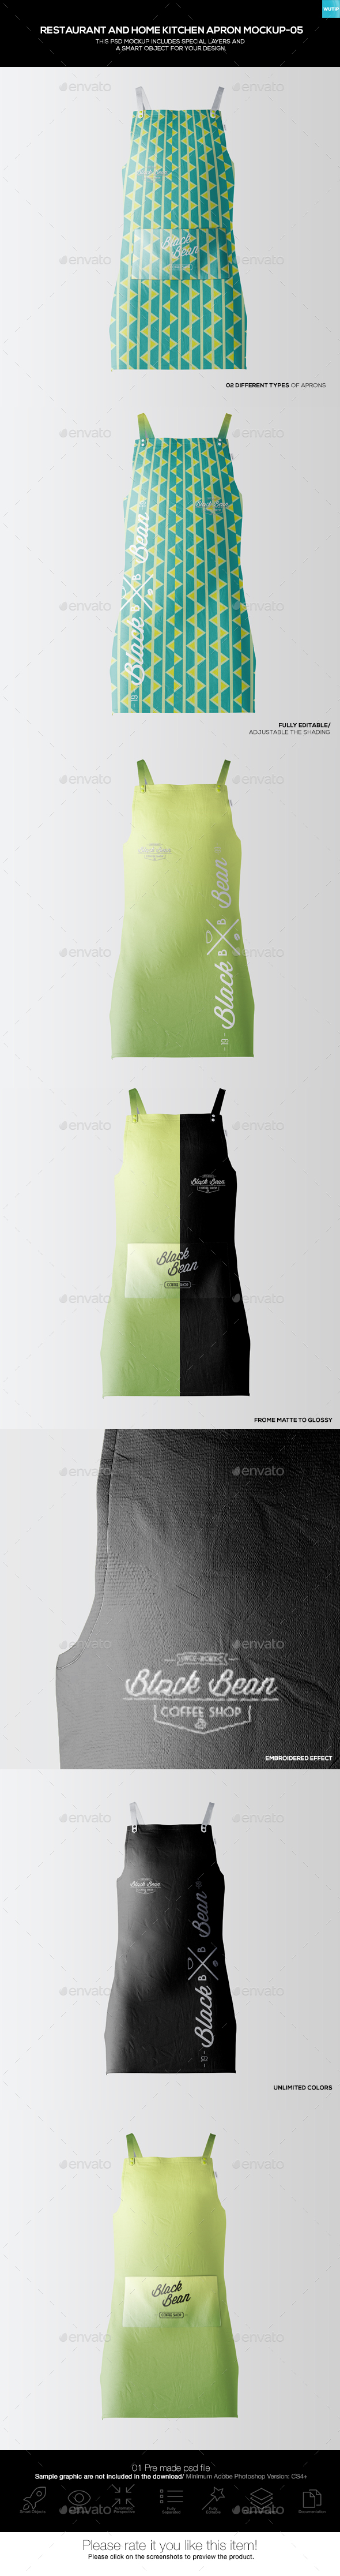 Restaurant and Home Kietchen Apron Mockup-05 - Miscellaneous Apparel